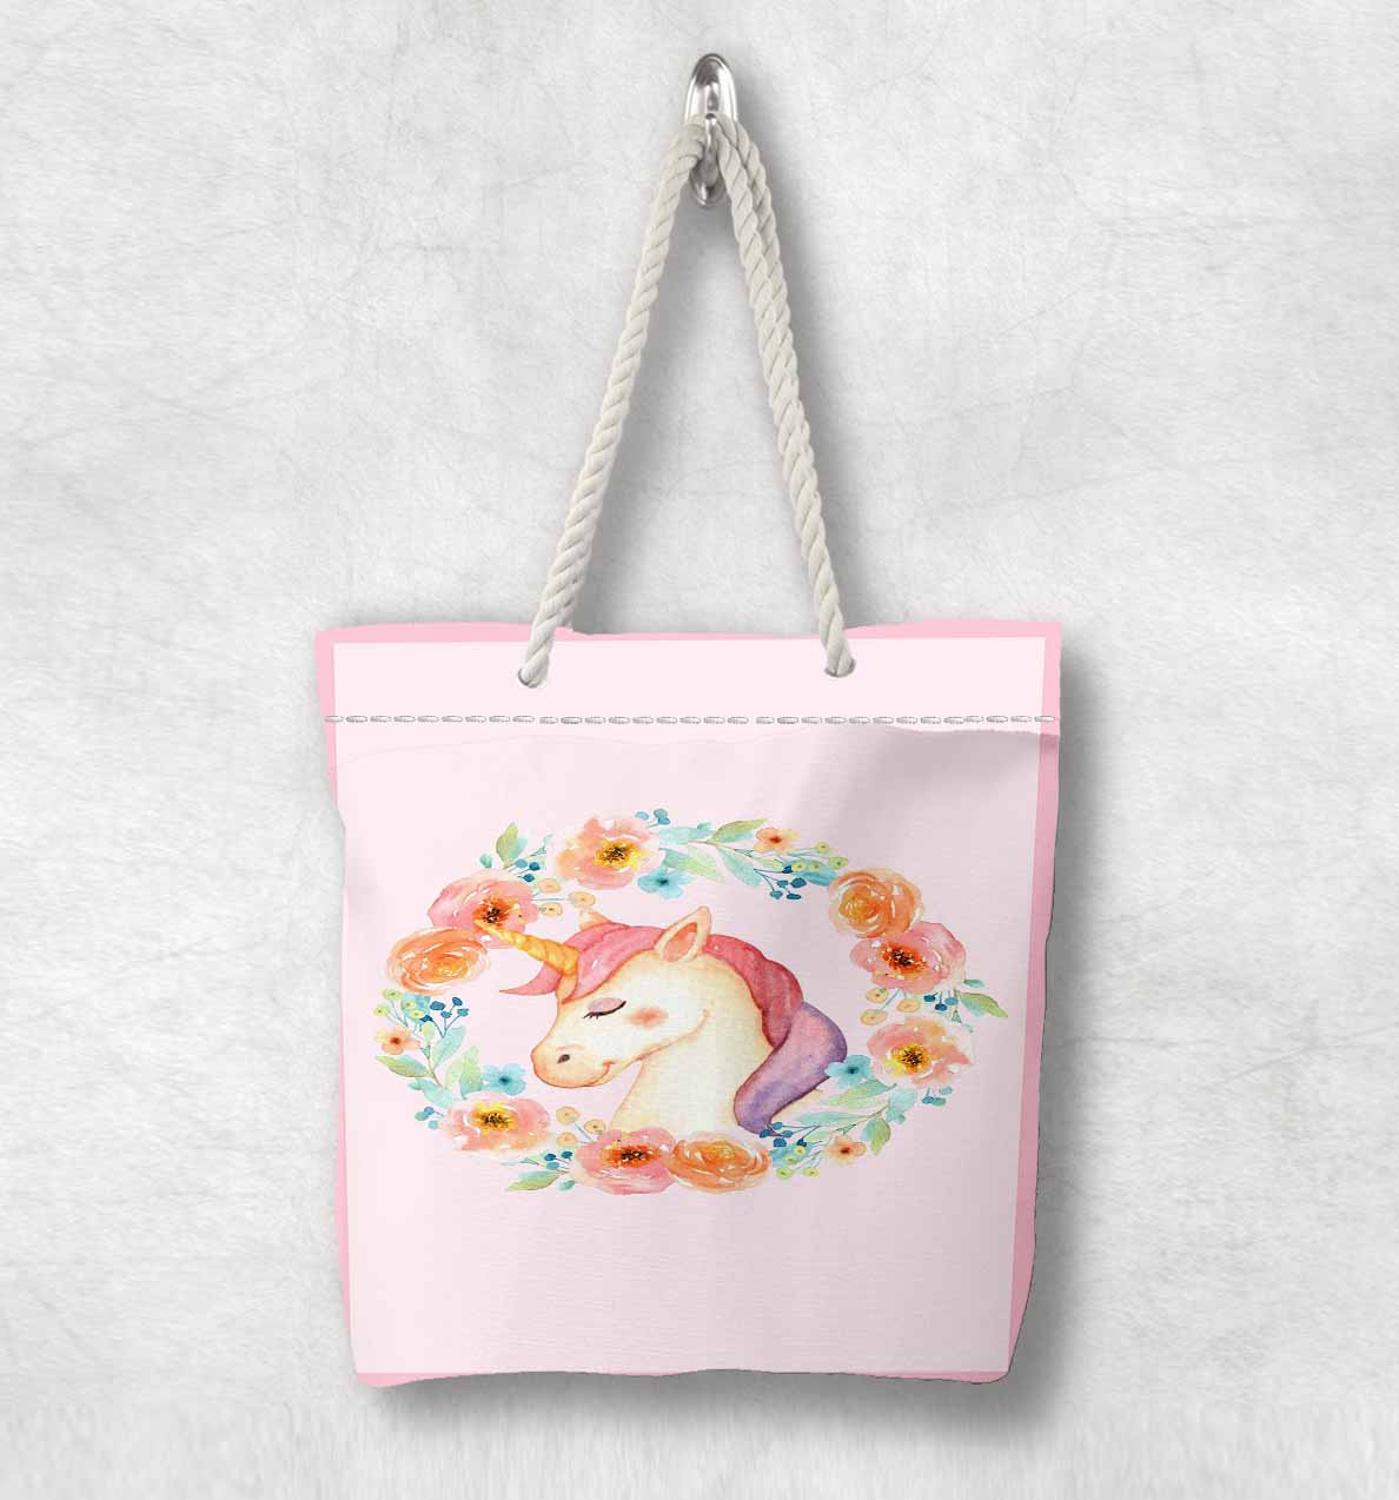 Else Pink Orange Flowers Unicorn Horses Scandinavian White Rope Handle Canvas Bag  Cartoon Print Zippered Tote Bag Shoulder Bag